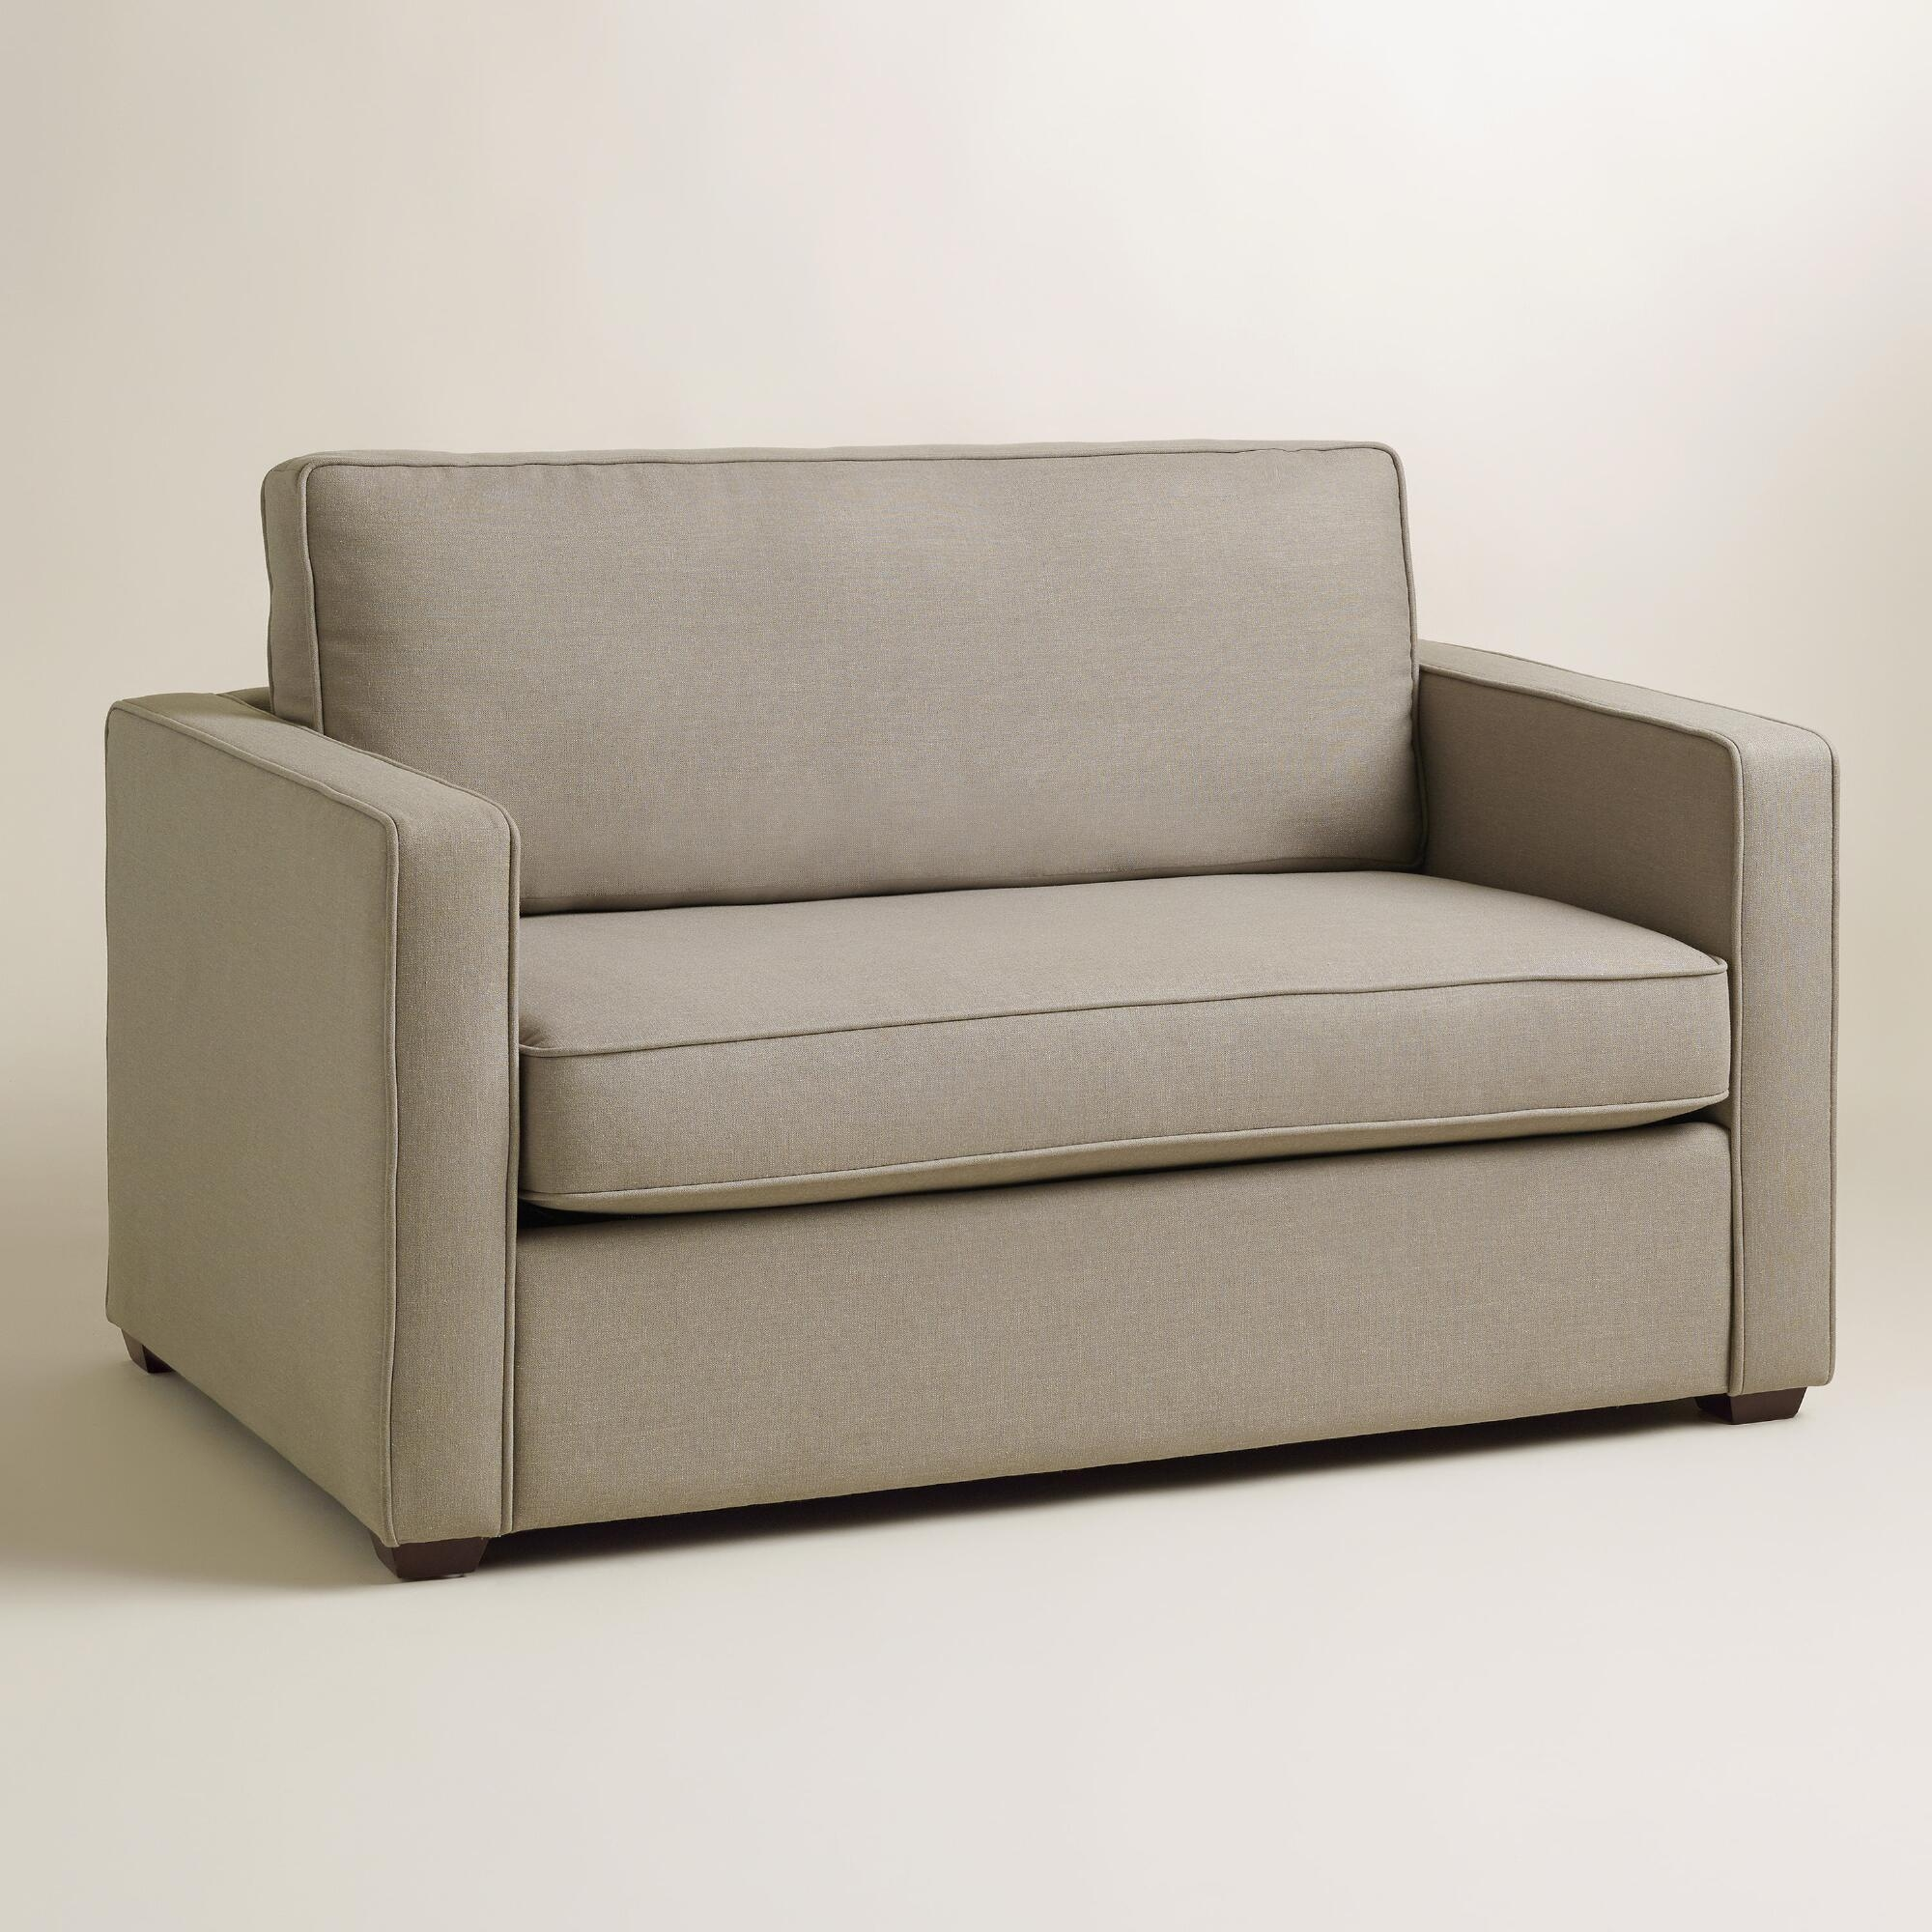 Sleeper Sofa Chair And A Half | Tehranmix Decoration Pertaining To Twin Sleeper Sofa Chairs (Image 10 of 20)